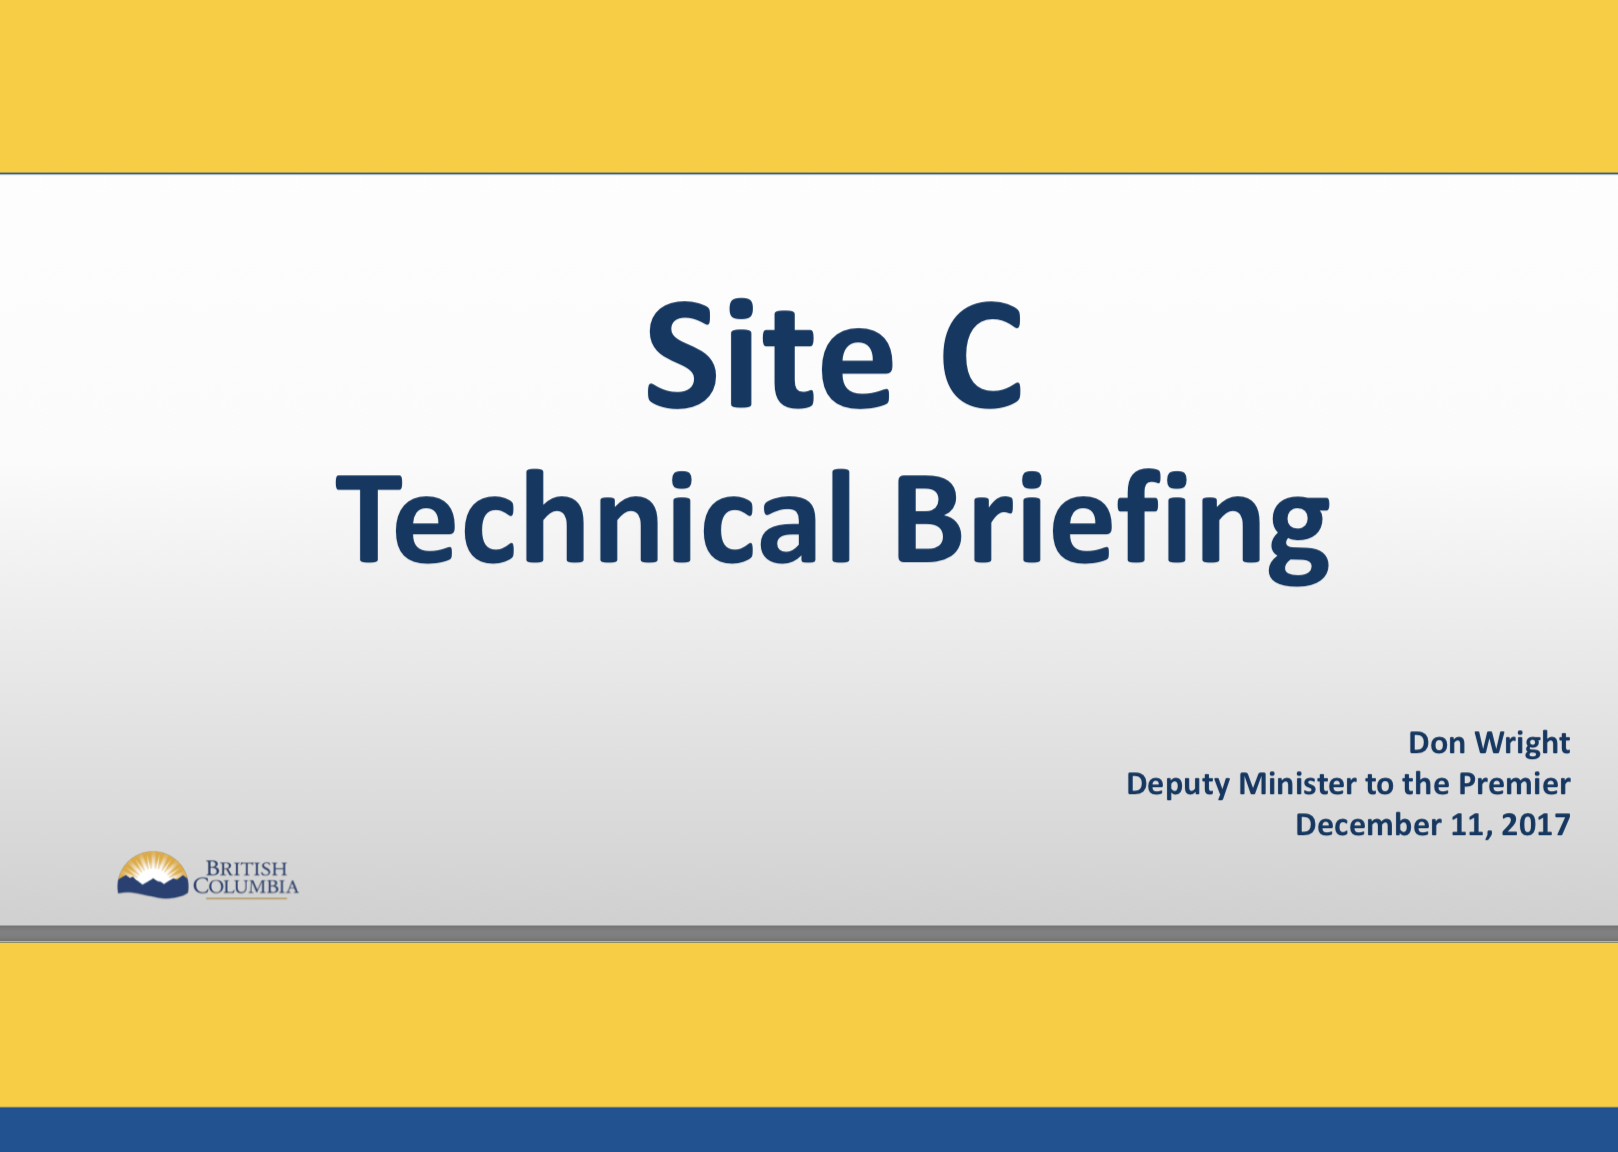 This Site C Technical Briefing Prepared To Justify Site C